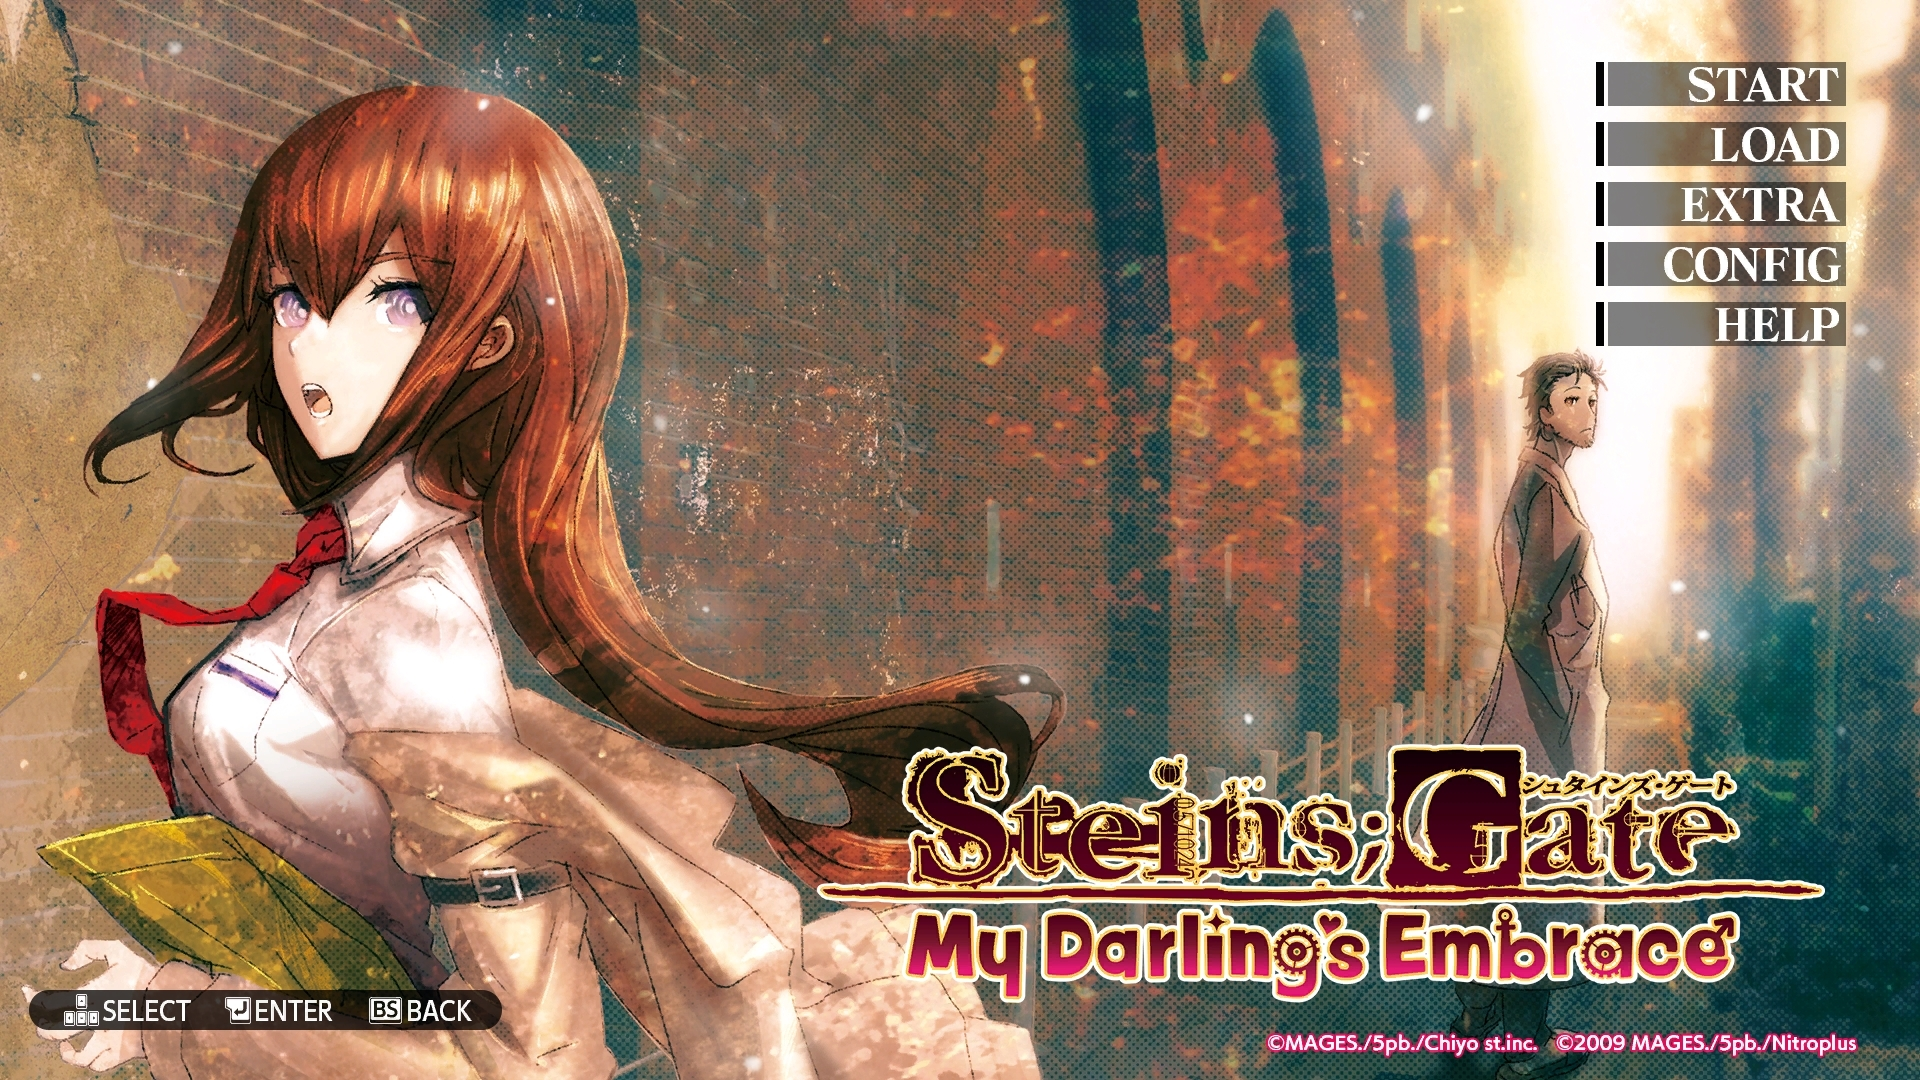 Steins;Gate: My Darling's Embrace poster